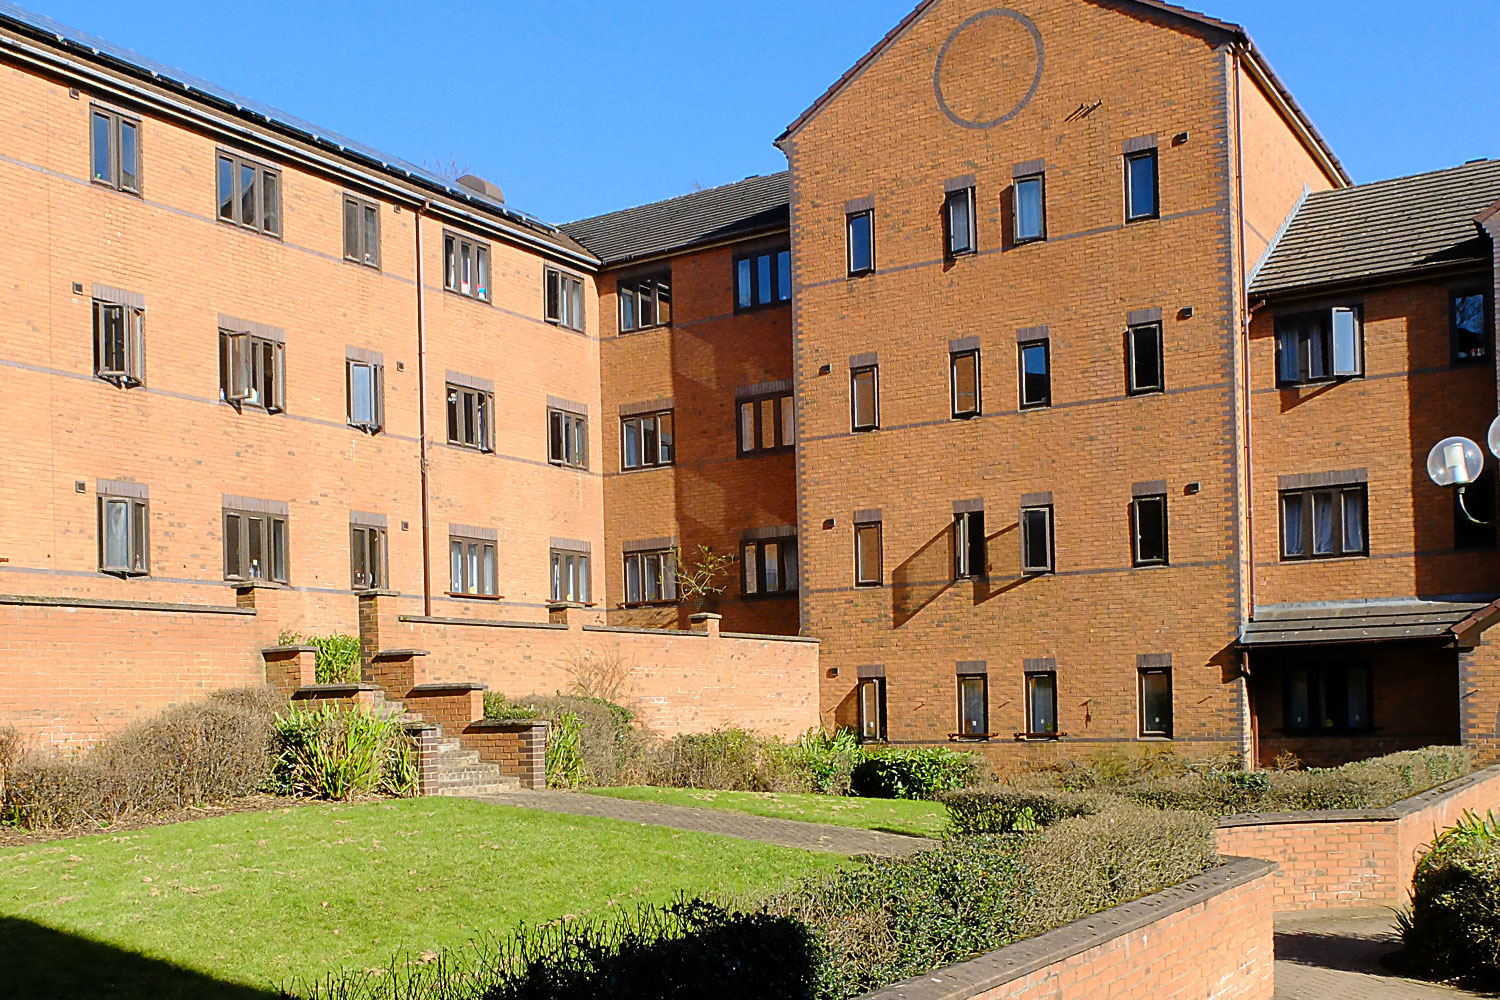 Keele University, accommodation in halls of residence